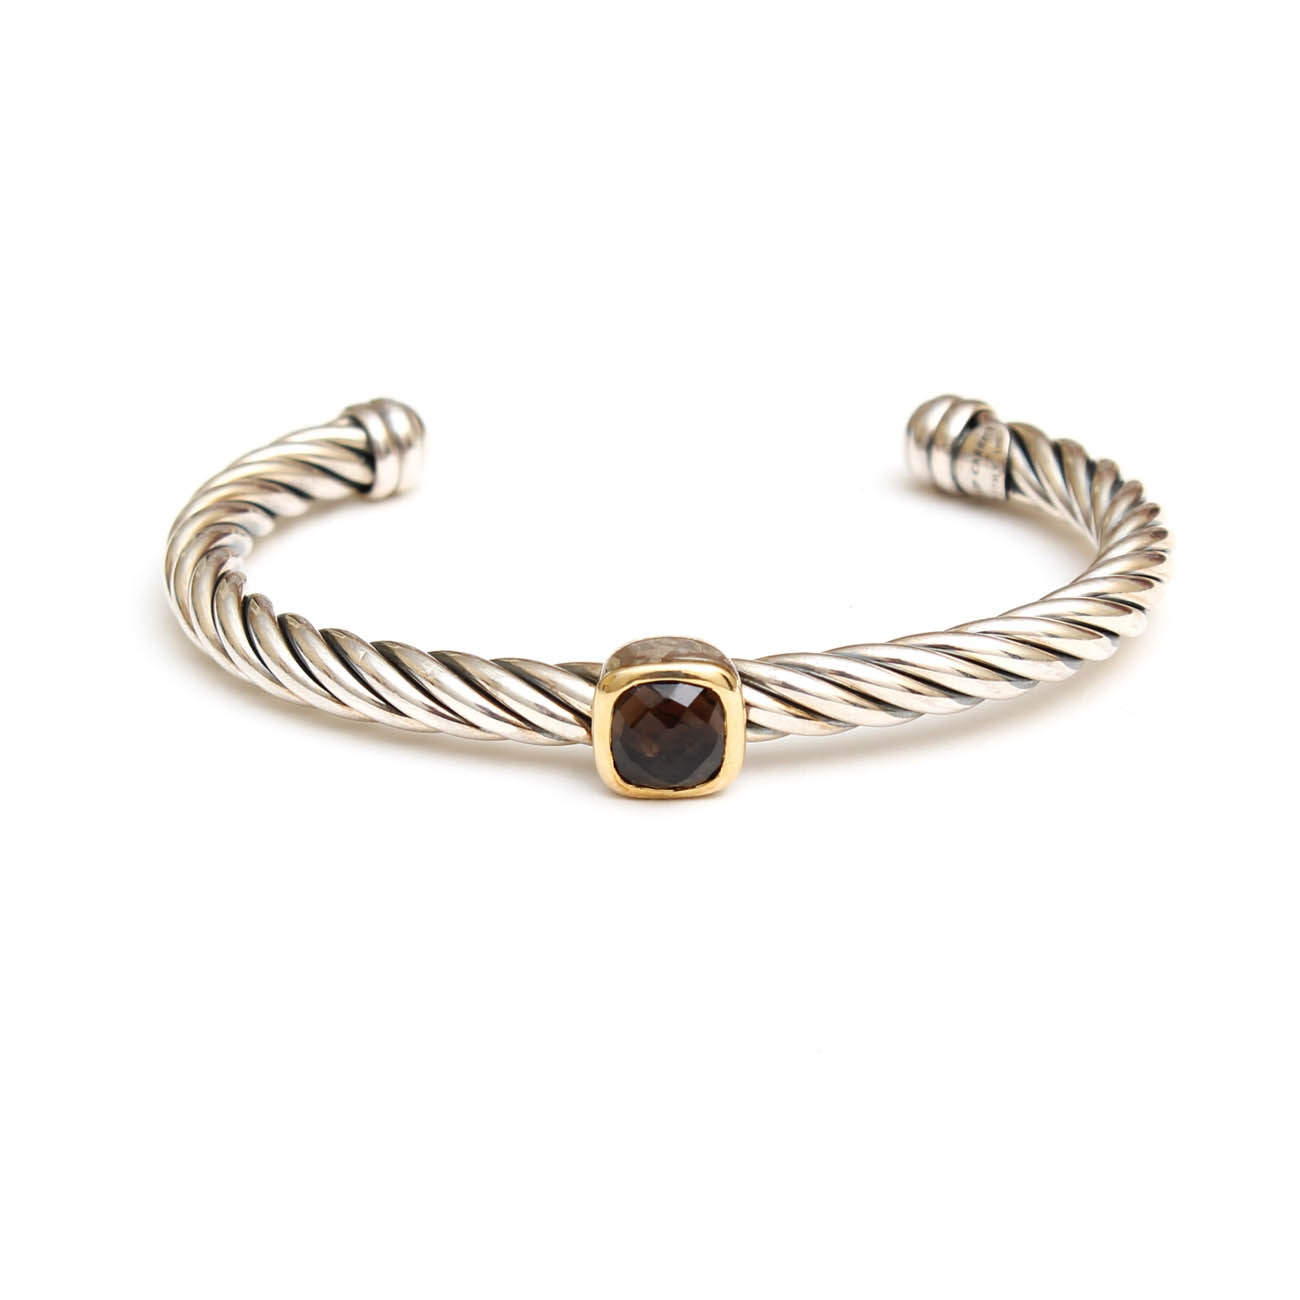 Phillip Gabriel Sterling Silver and 18K Yellow Gold Cuff with Smoky Quartz